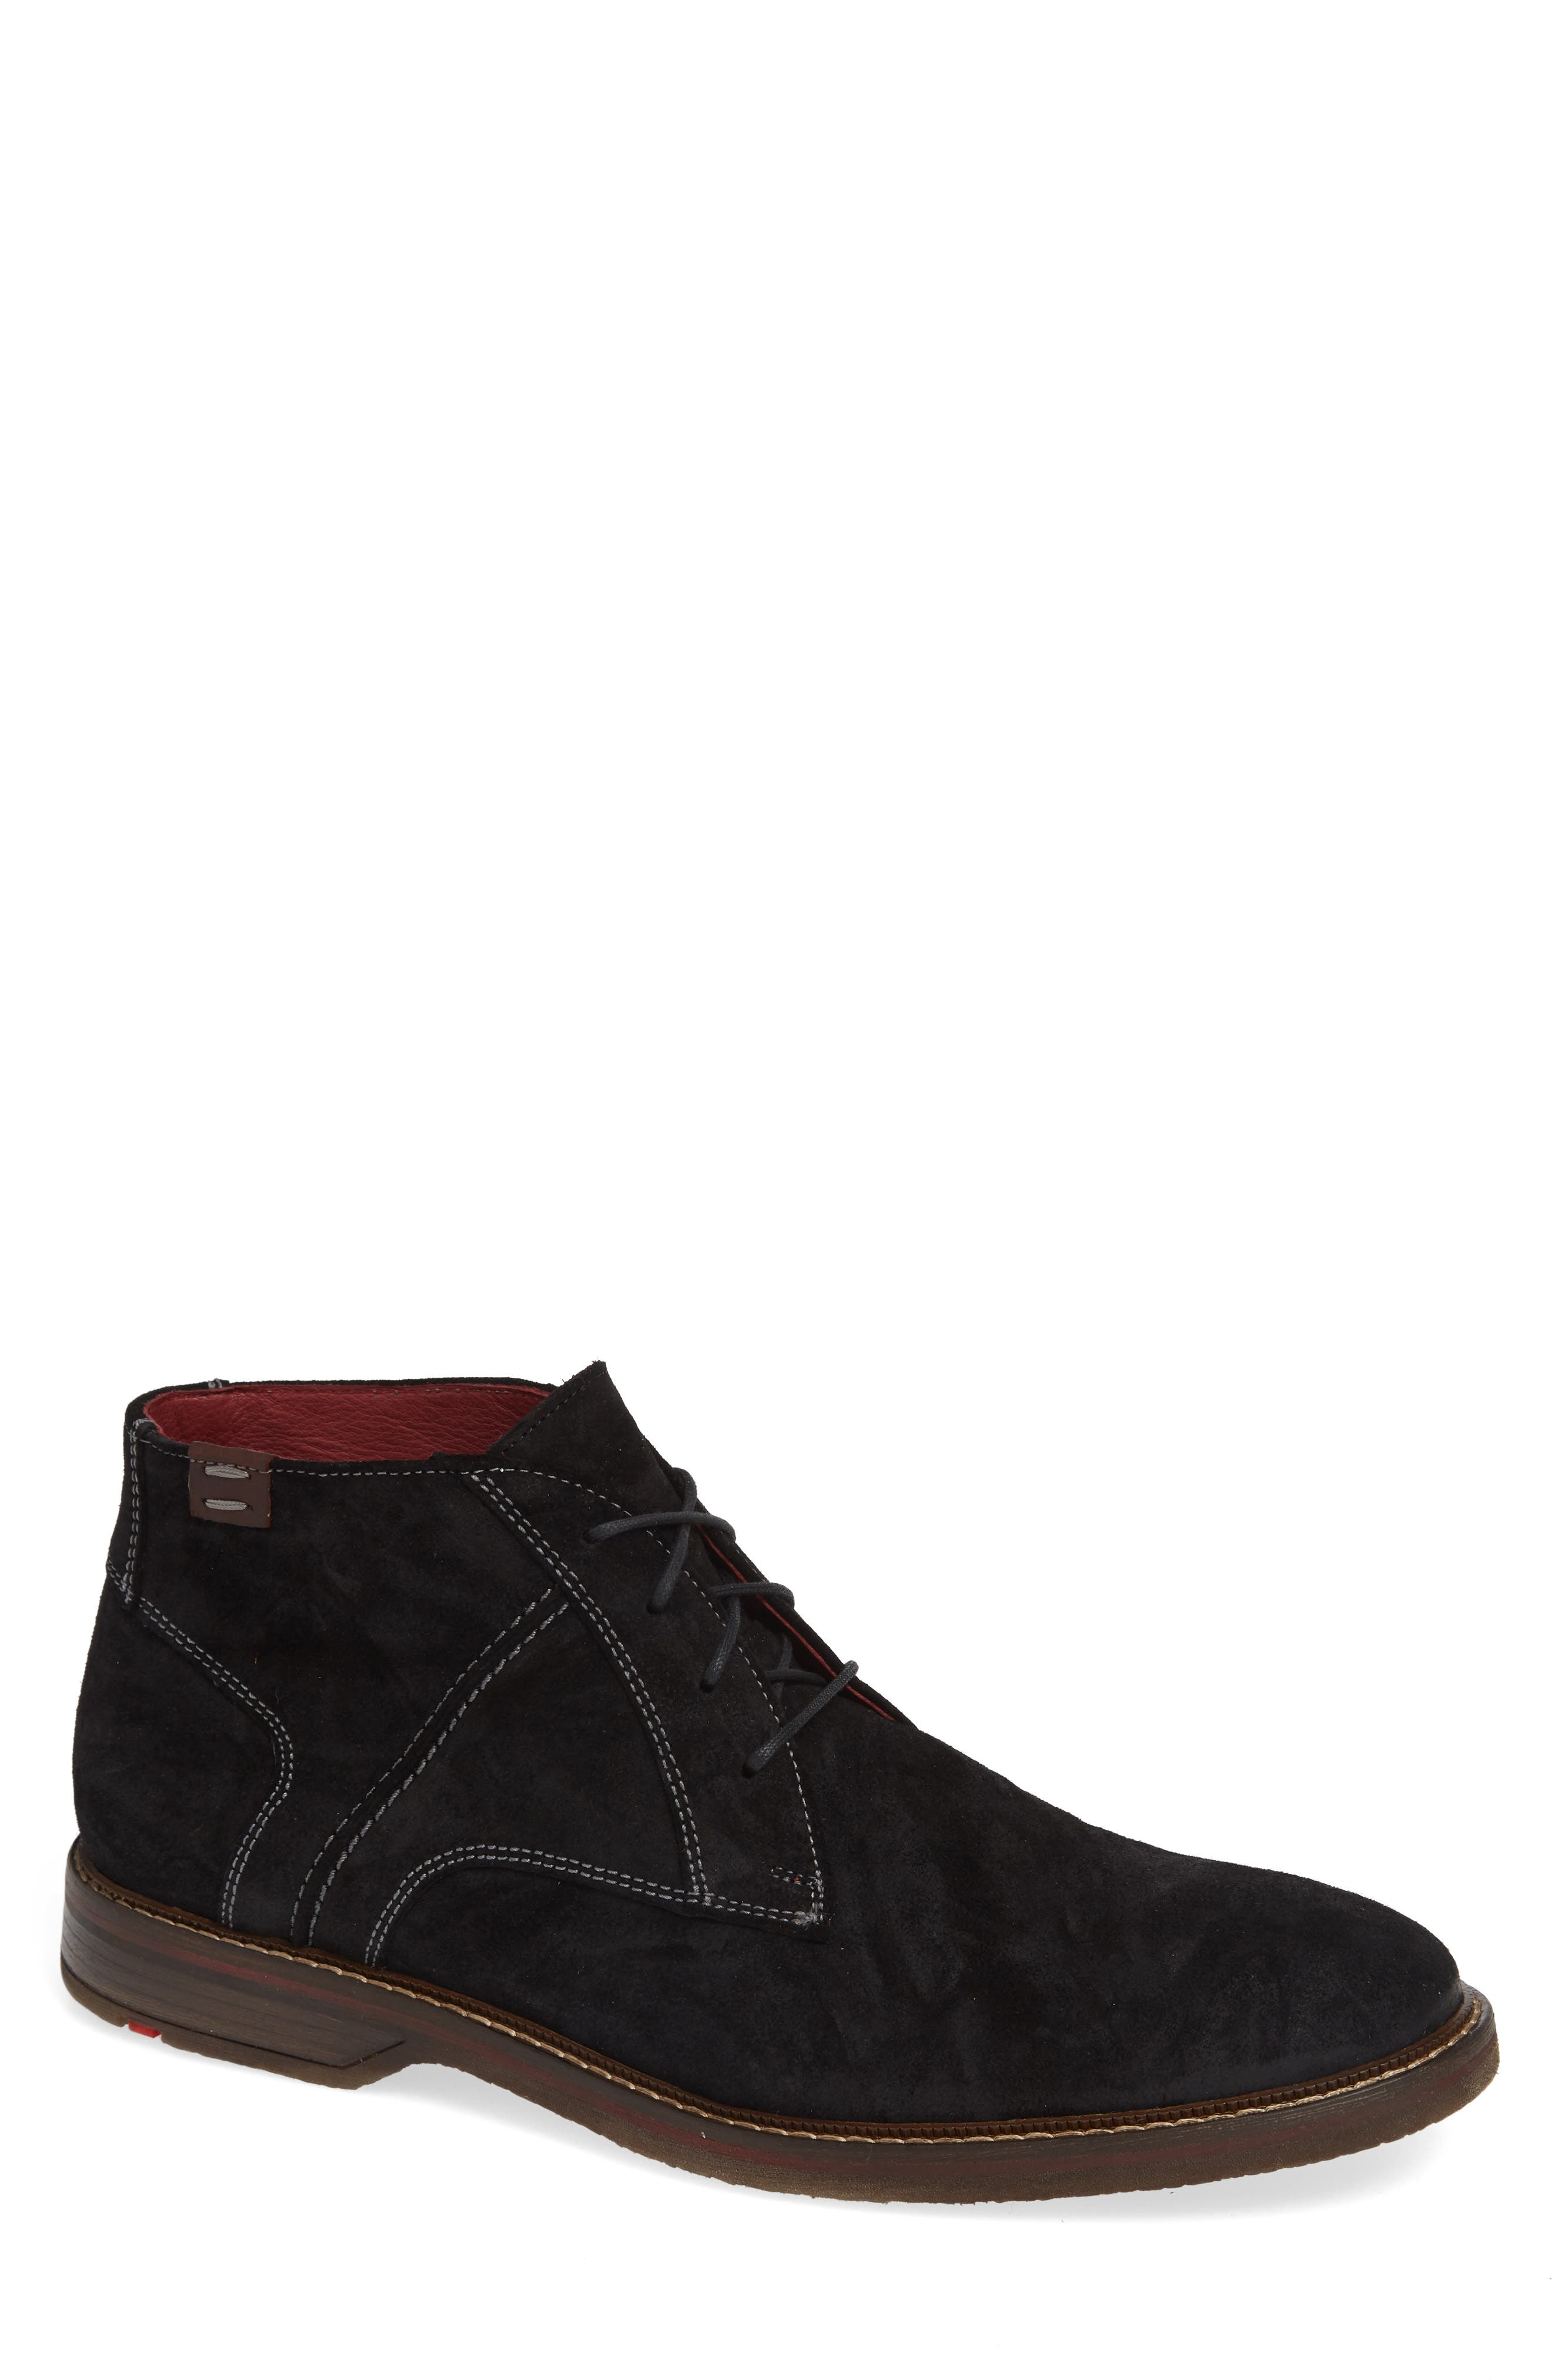 Dalbert Chukka Boot,                         Main,                         color, BLACK/ KENIA SUEDE